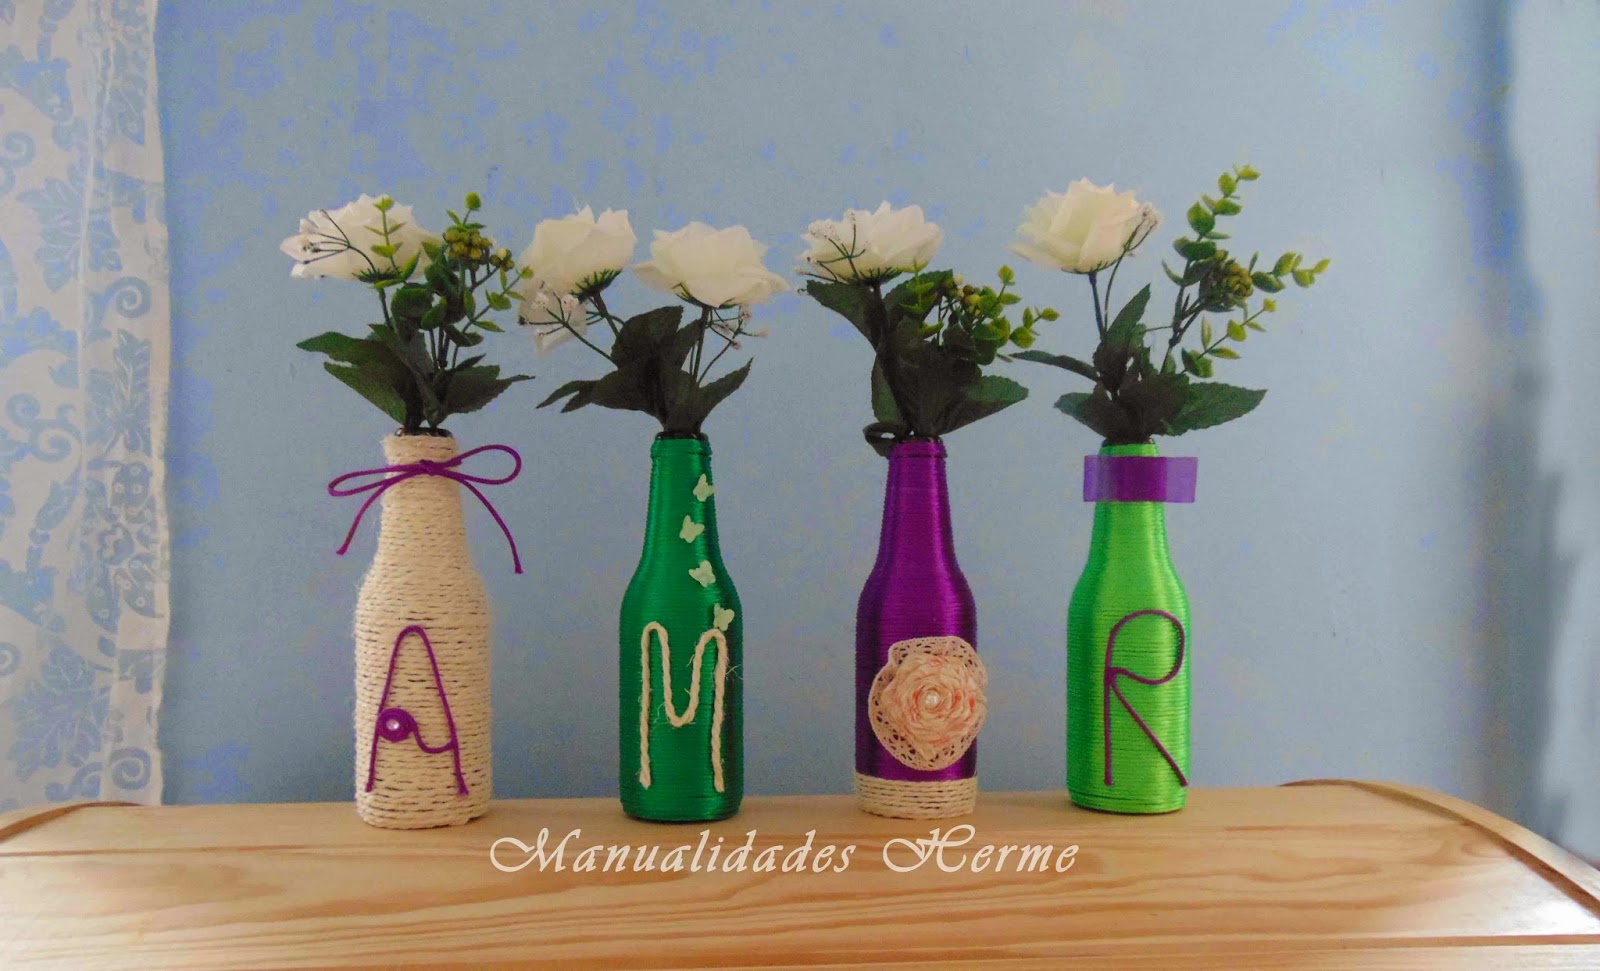 Manualidades herme diy decorar botellas de vidrio - Decoracion con cuerdas ...